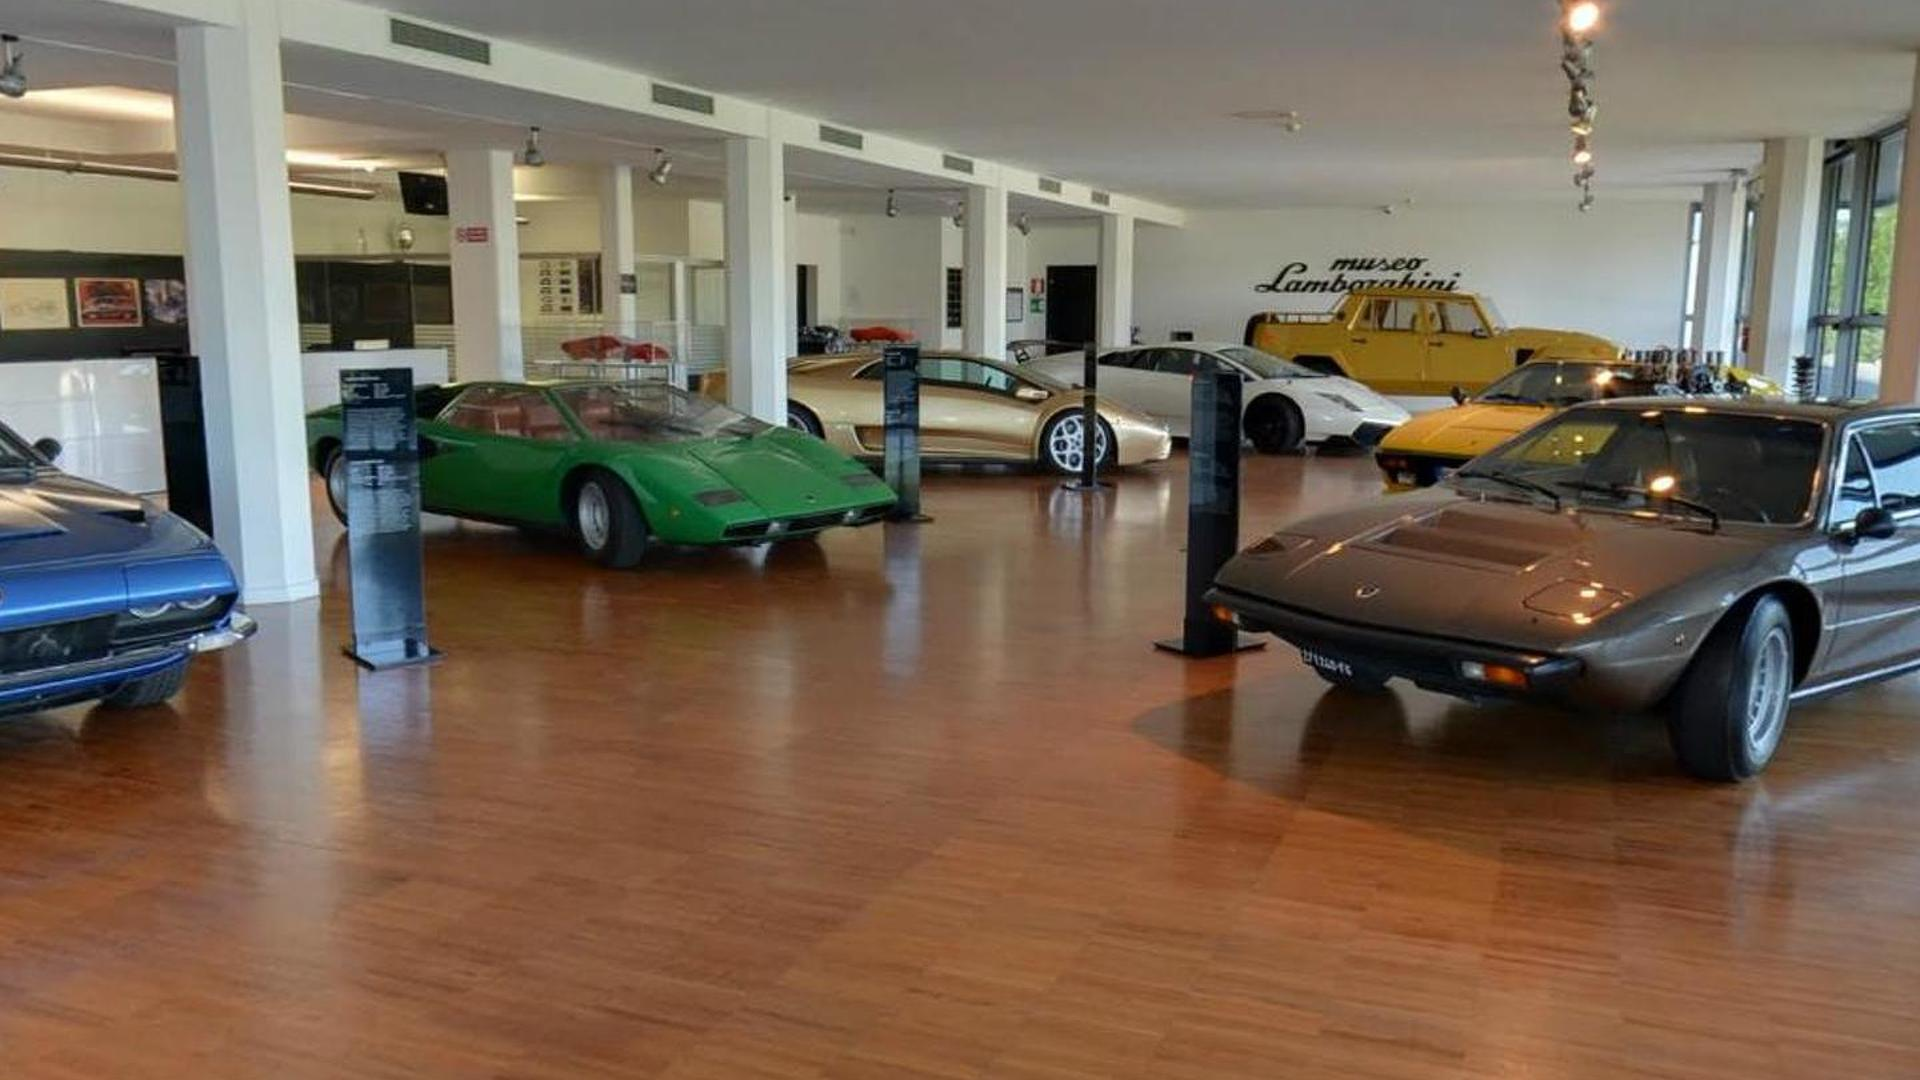 Lamborghini Museum enters the digital age with Indoor View on Google Maps